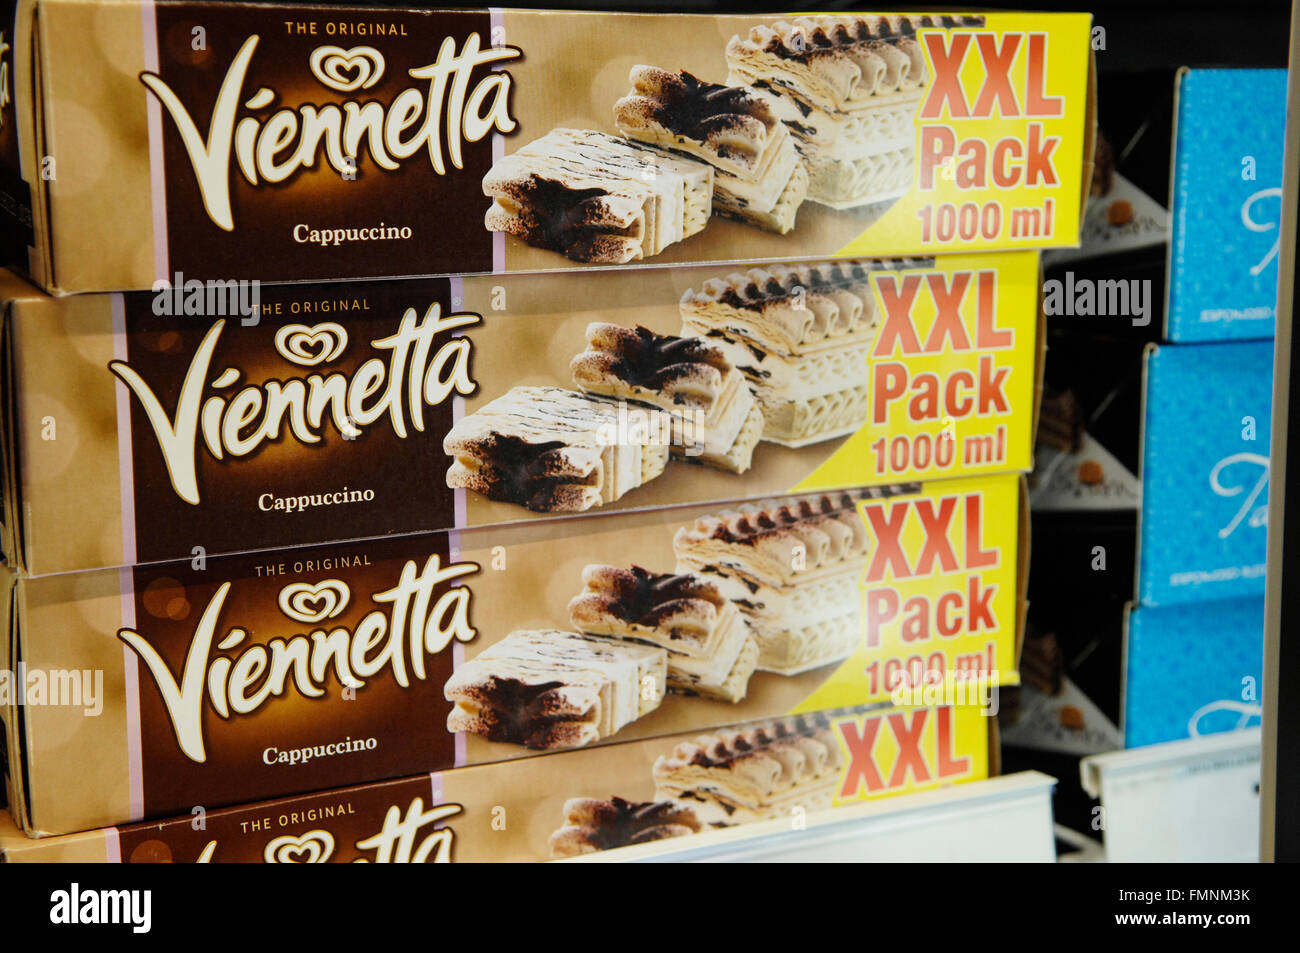 Viennetta ice cream 1000ml packs produced by the Unilever company. - Stock Image